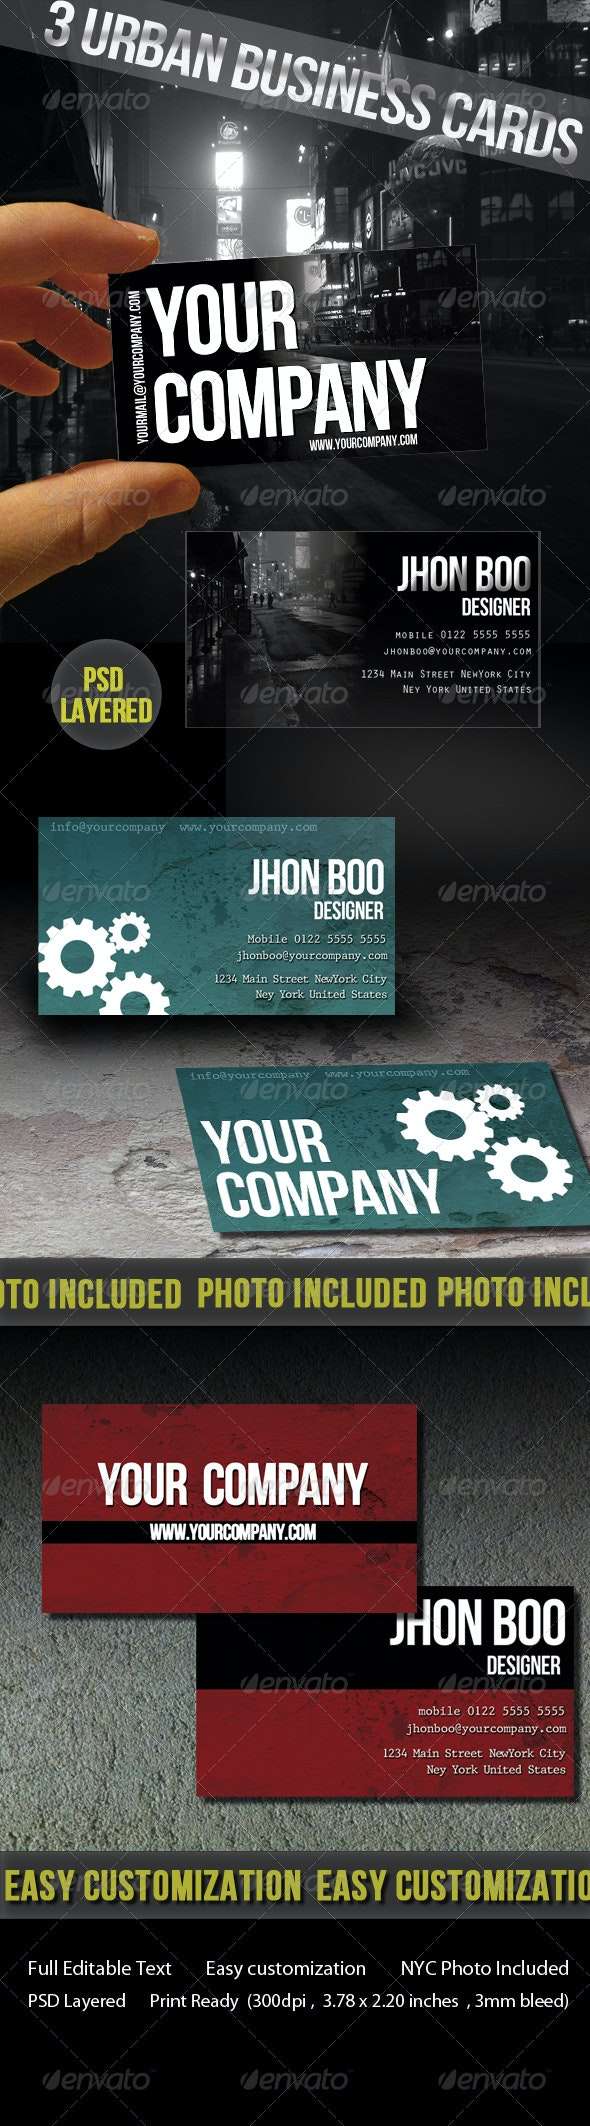 Urban Business Cards - Creative Business Cards